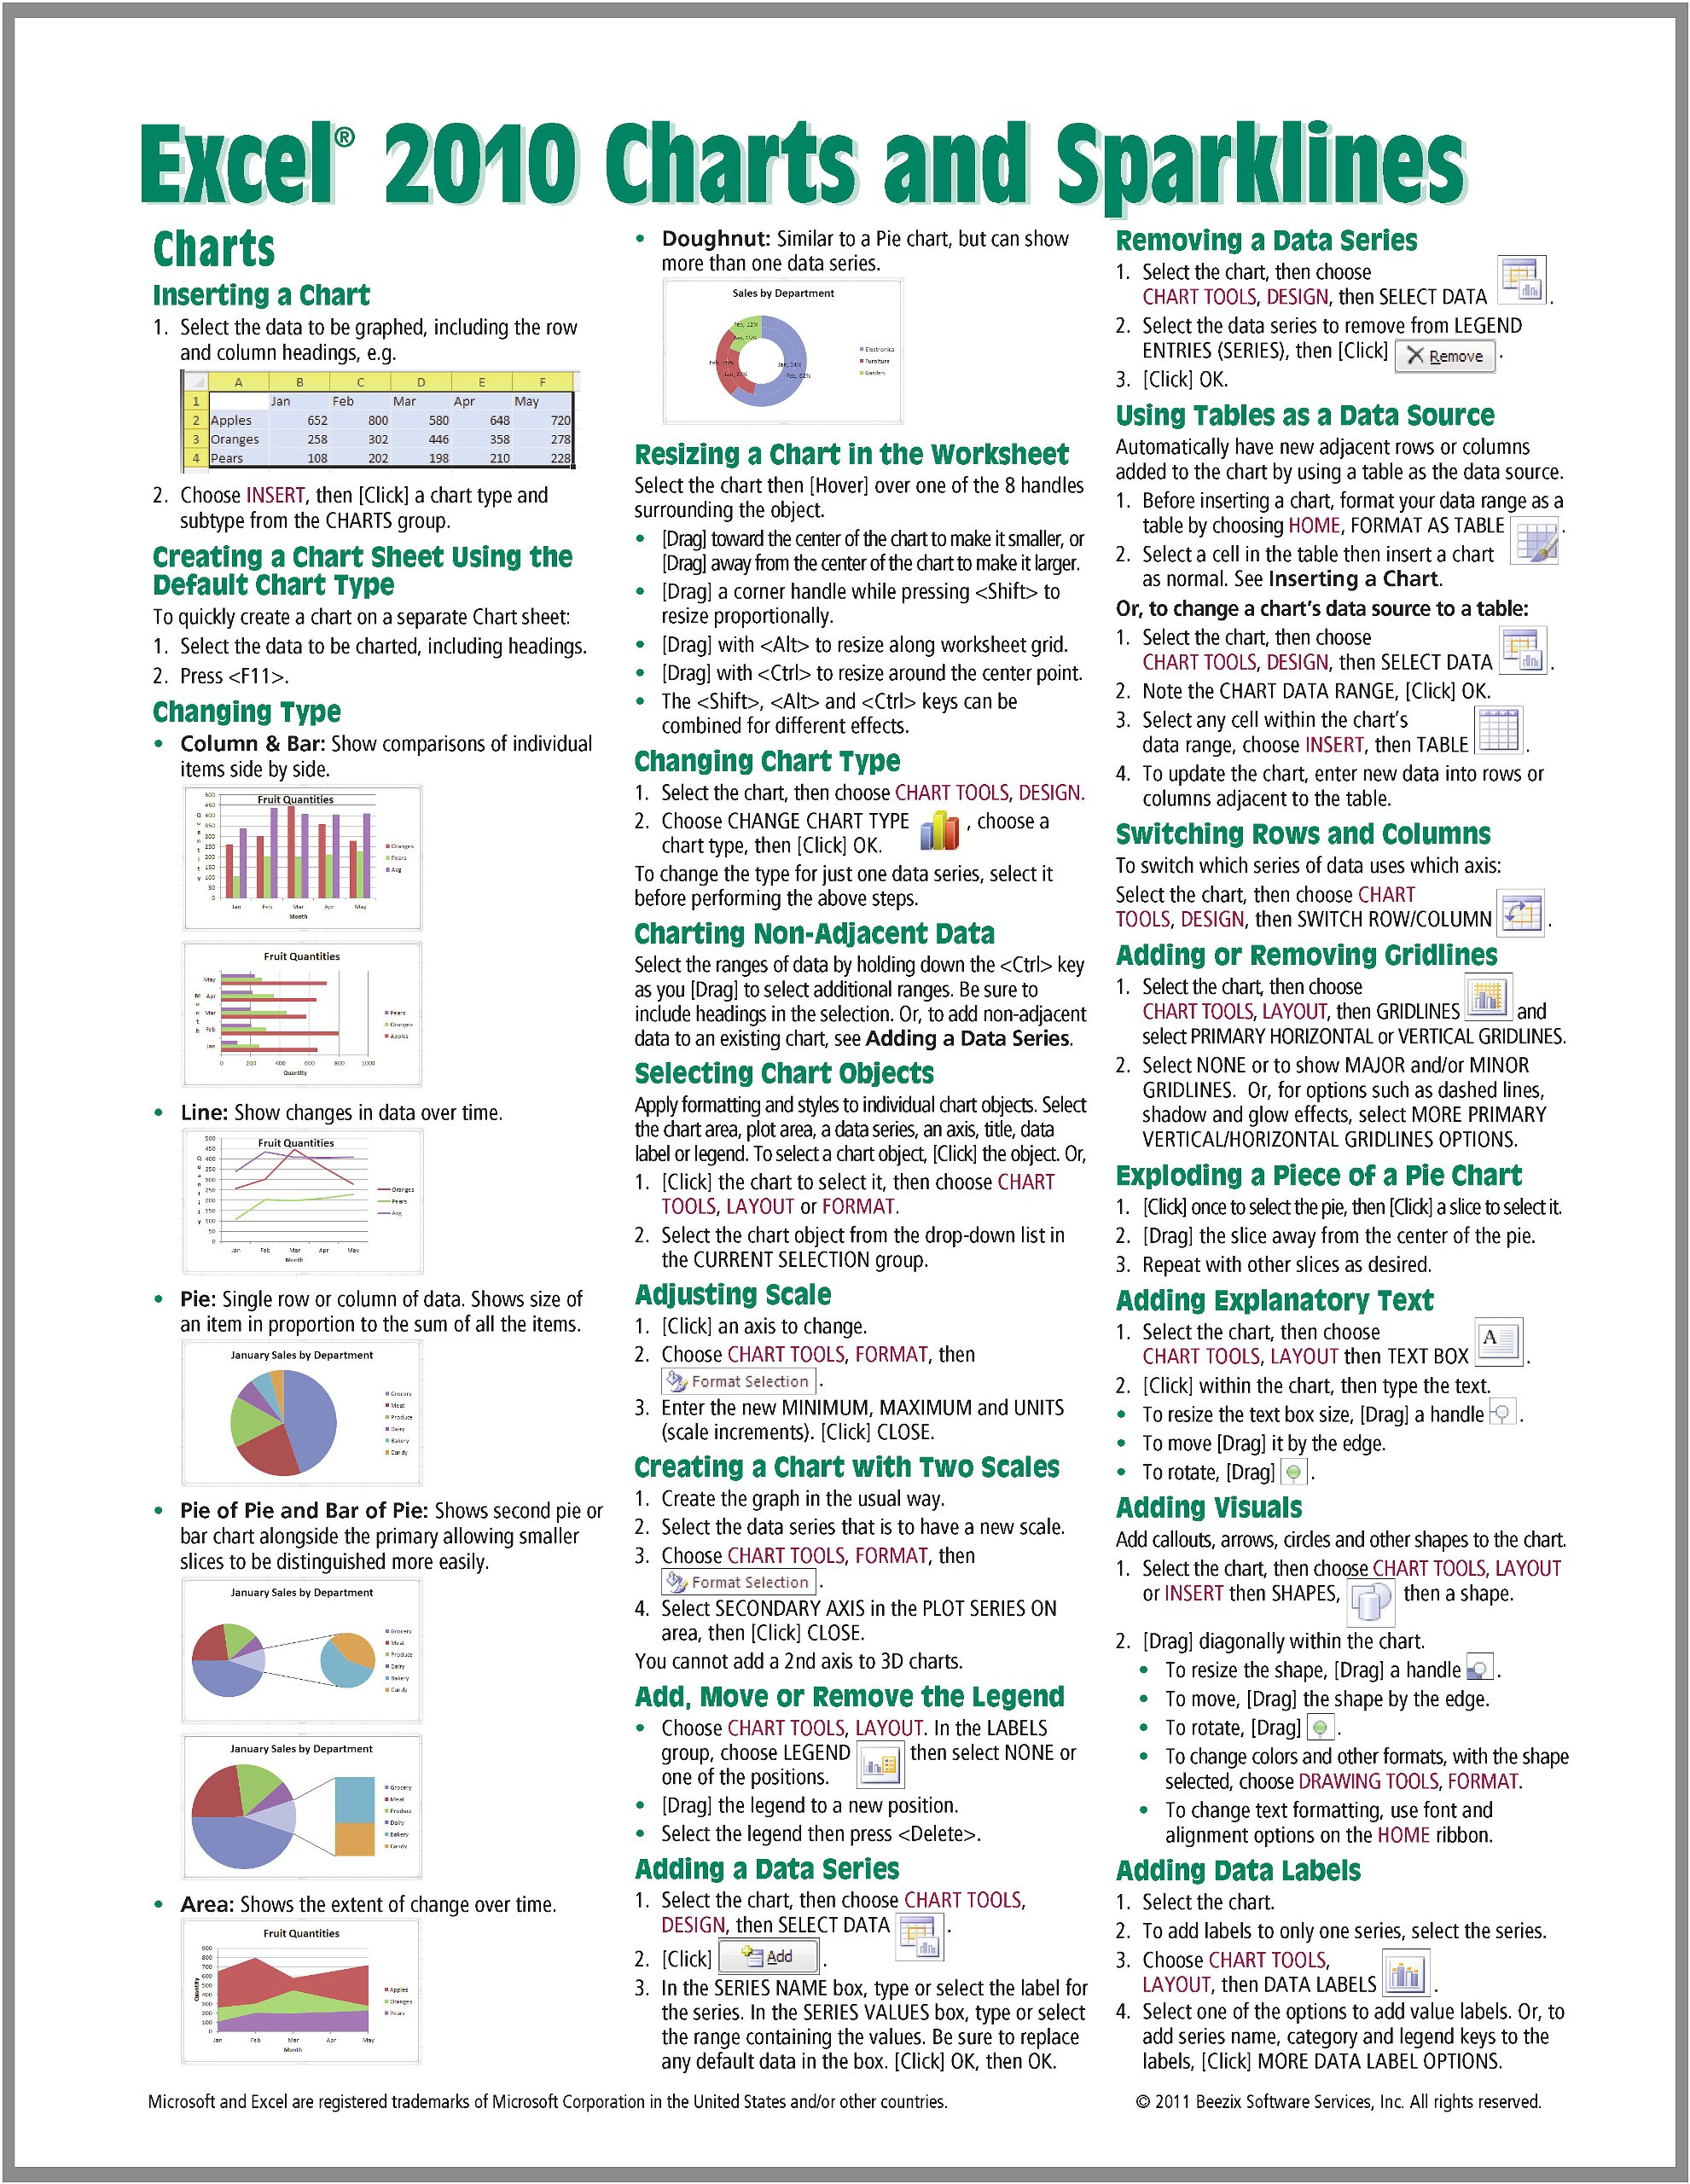 Microsoft Excel 2010 Charts & Sparklines Quick Reference Guide